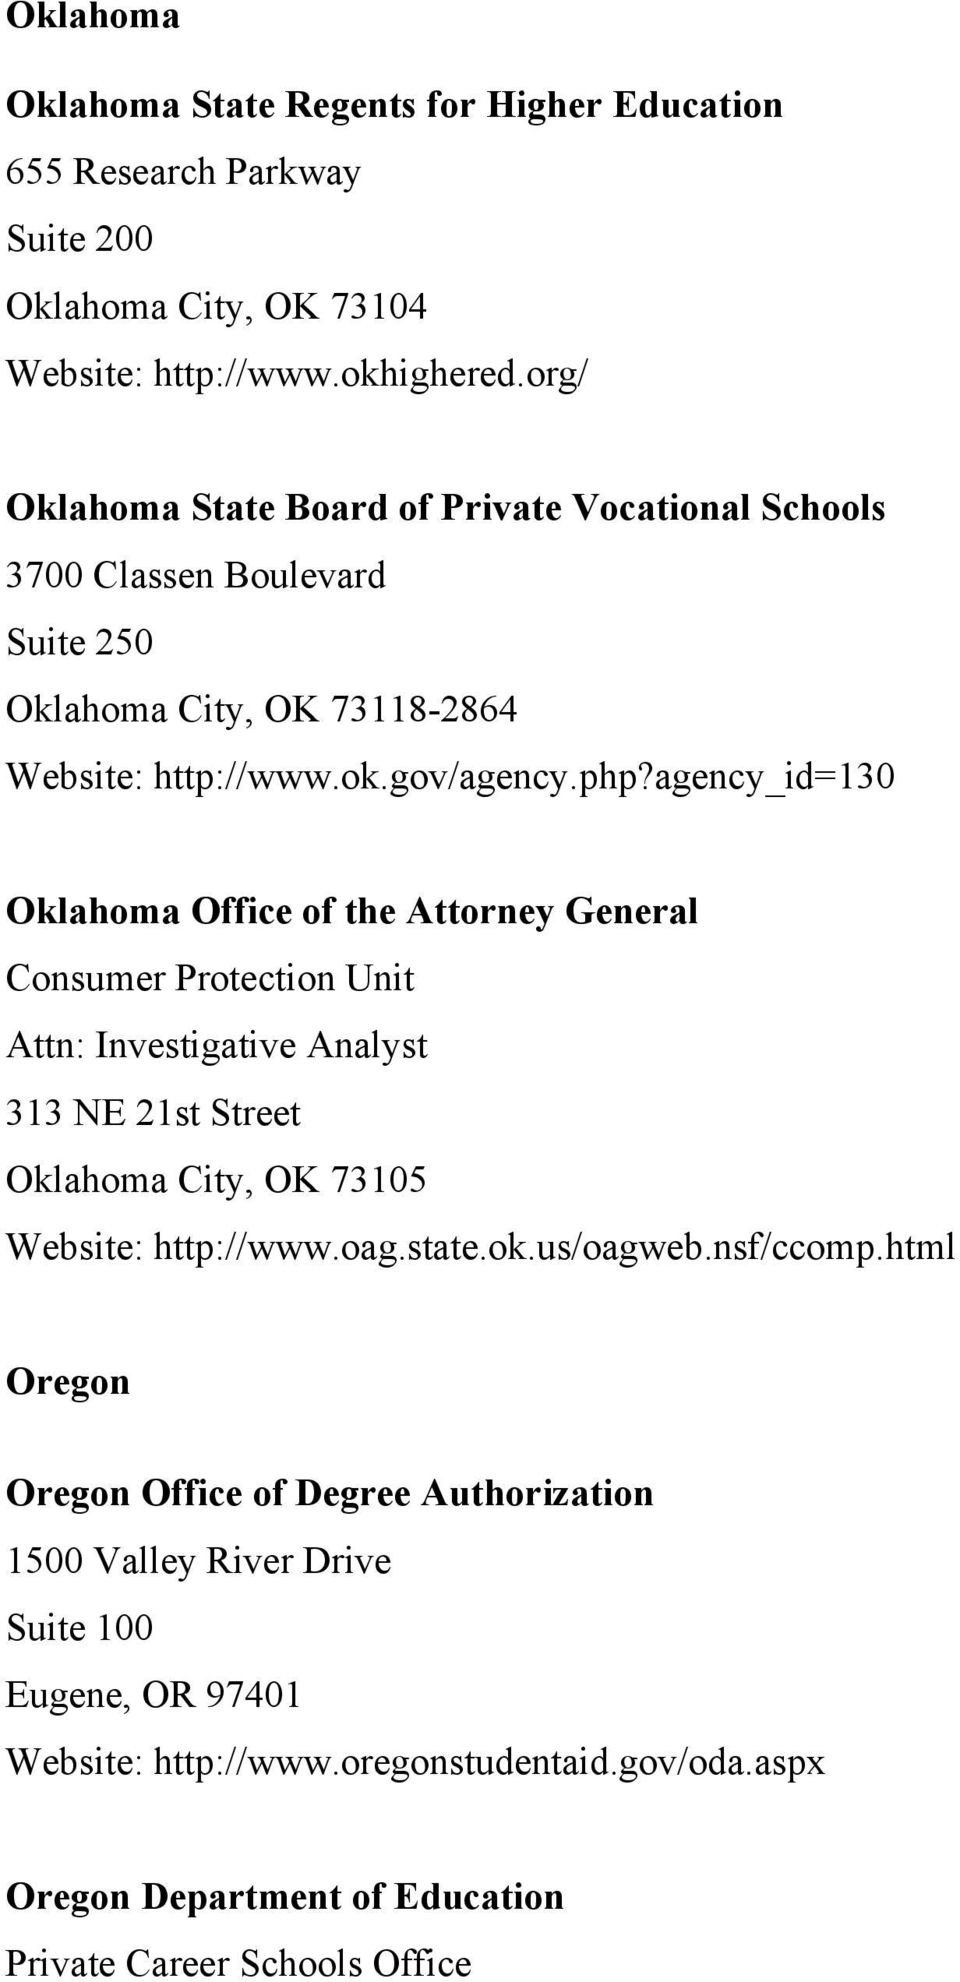 agency_id=130 Oklahoma Office of the Attorney General Consumer Protection Unit Attn: Investigative Analyst 313 NE 21st Street Oklahoma City, OK 73105 http://www.oag.